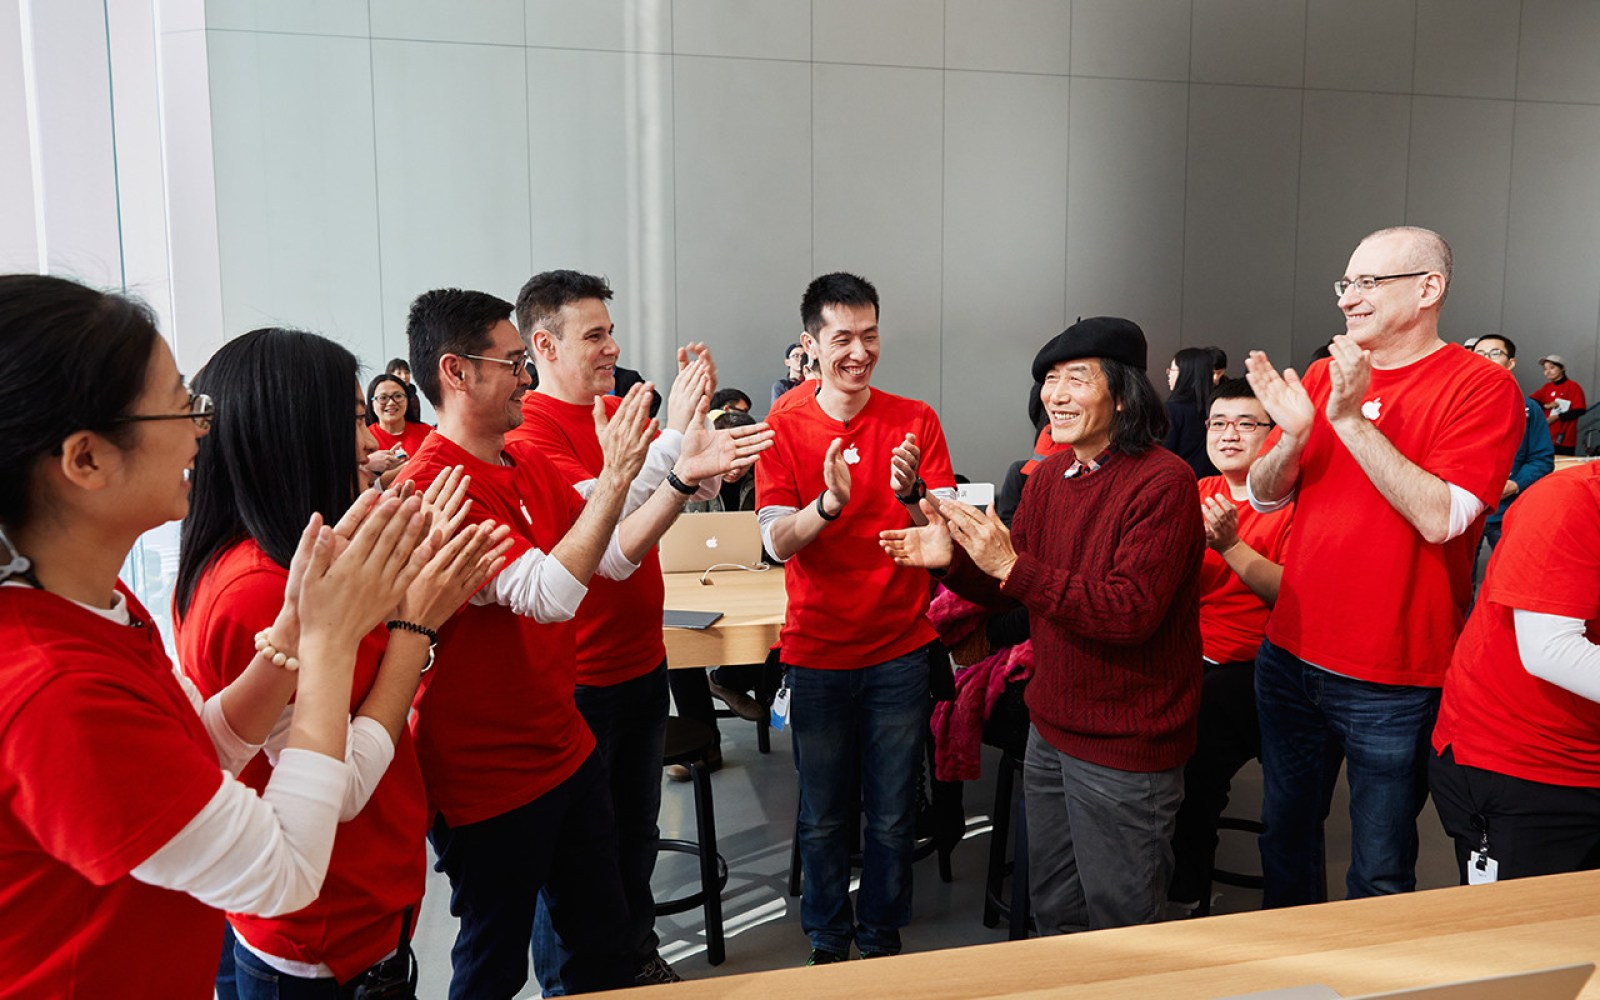 Apple to open its second retail store in Hangzhou, China on April 24